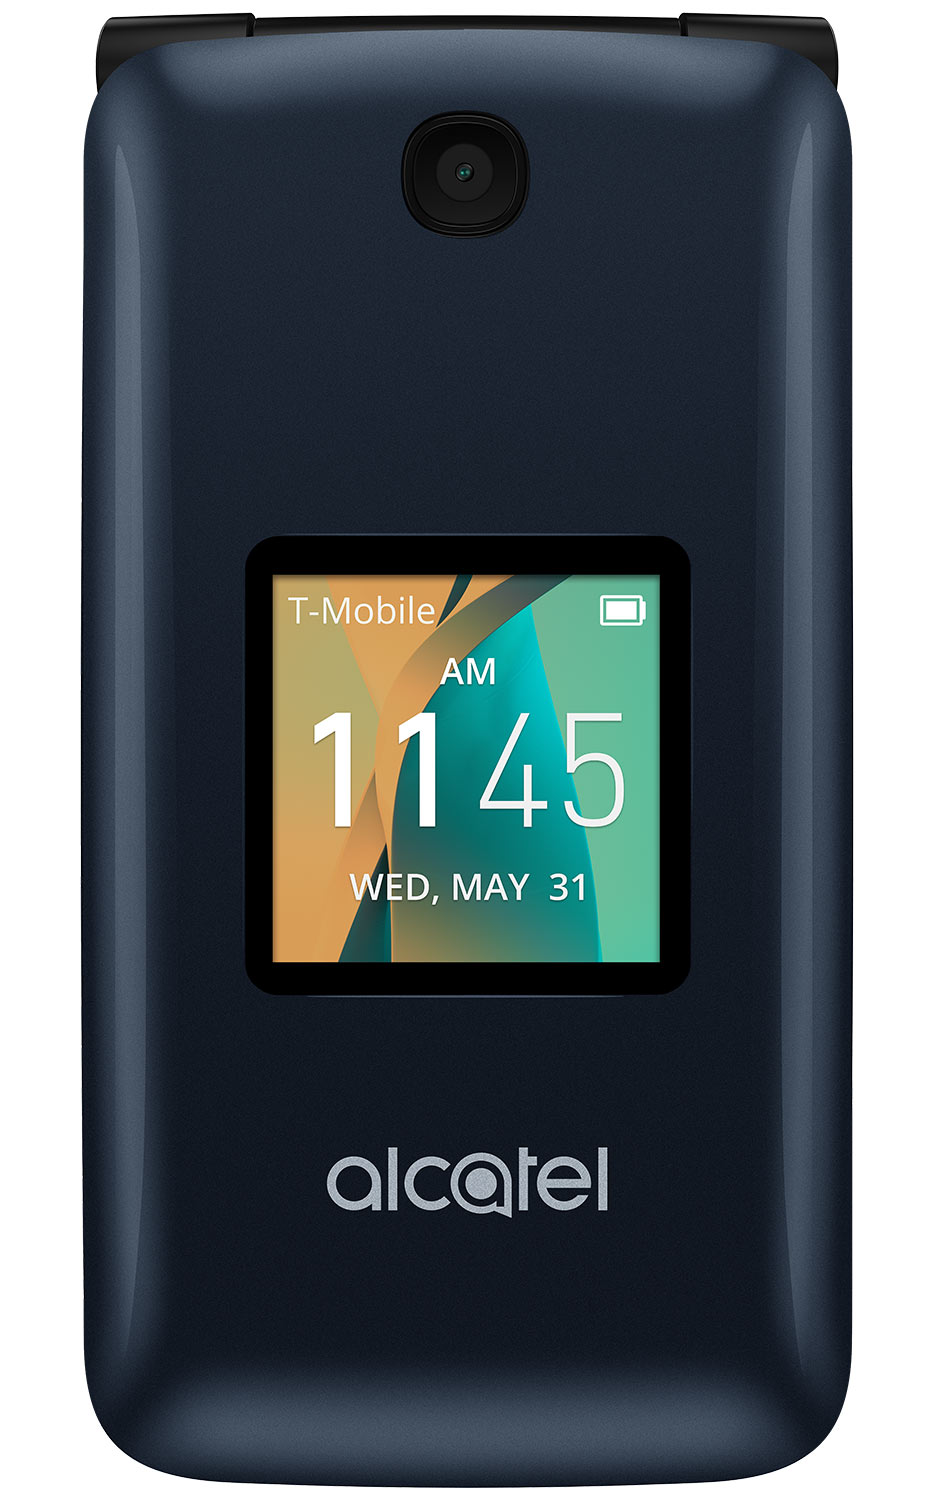 Alcatel Go Flip – A Basic Phone